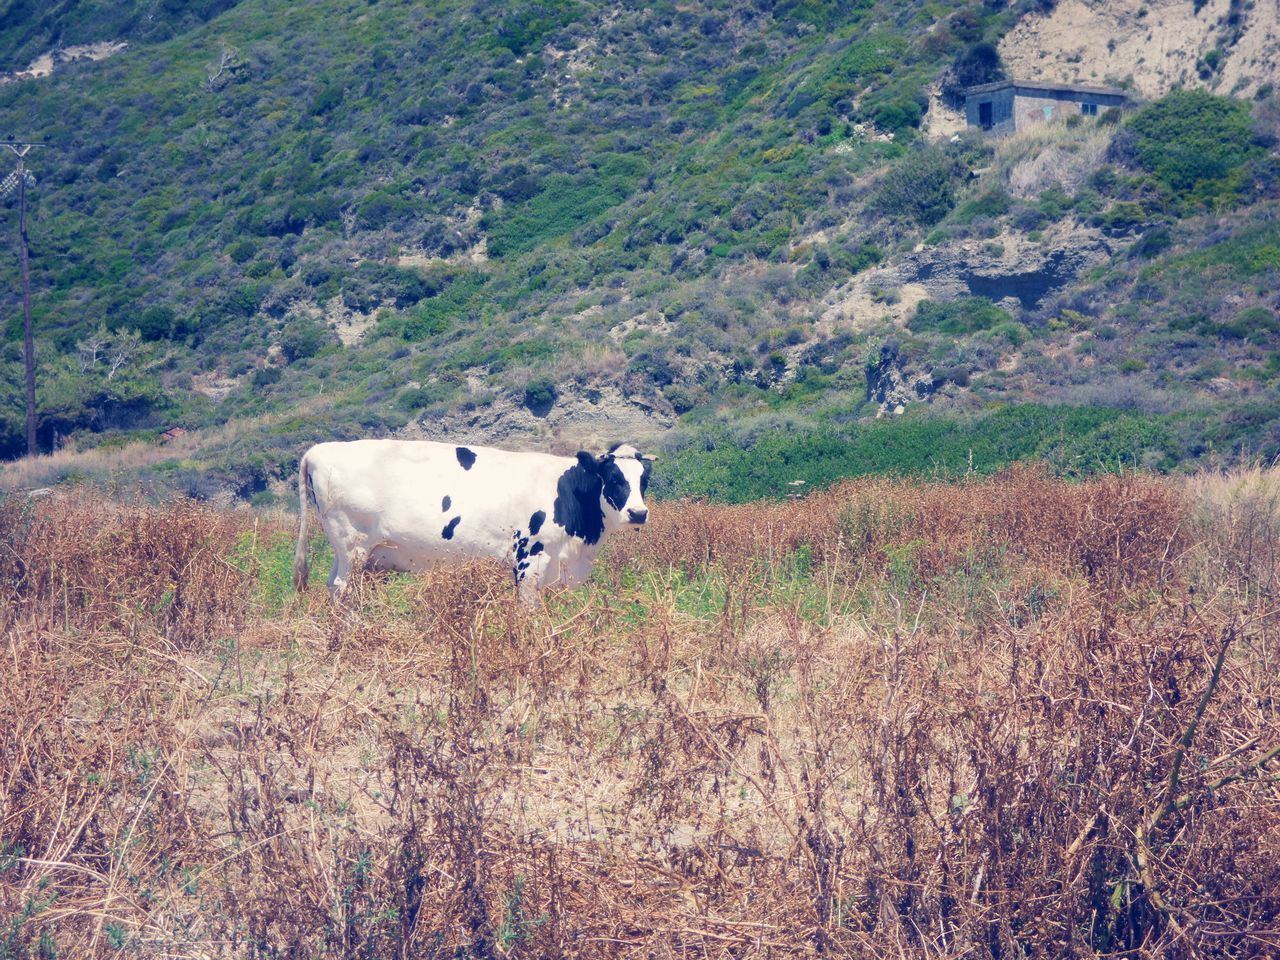 Cow Animal Themes Cattle Nature Landscape Farm Animal Outdoors Tree Beauty In Nature Grazing Grass